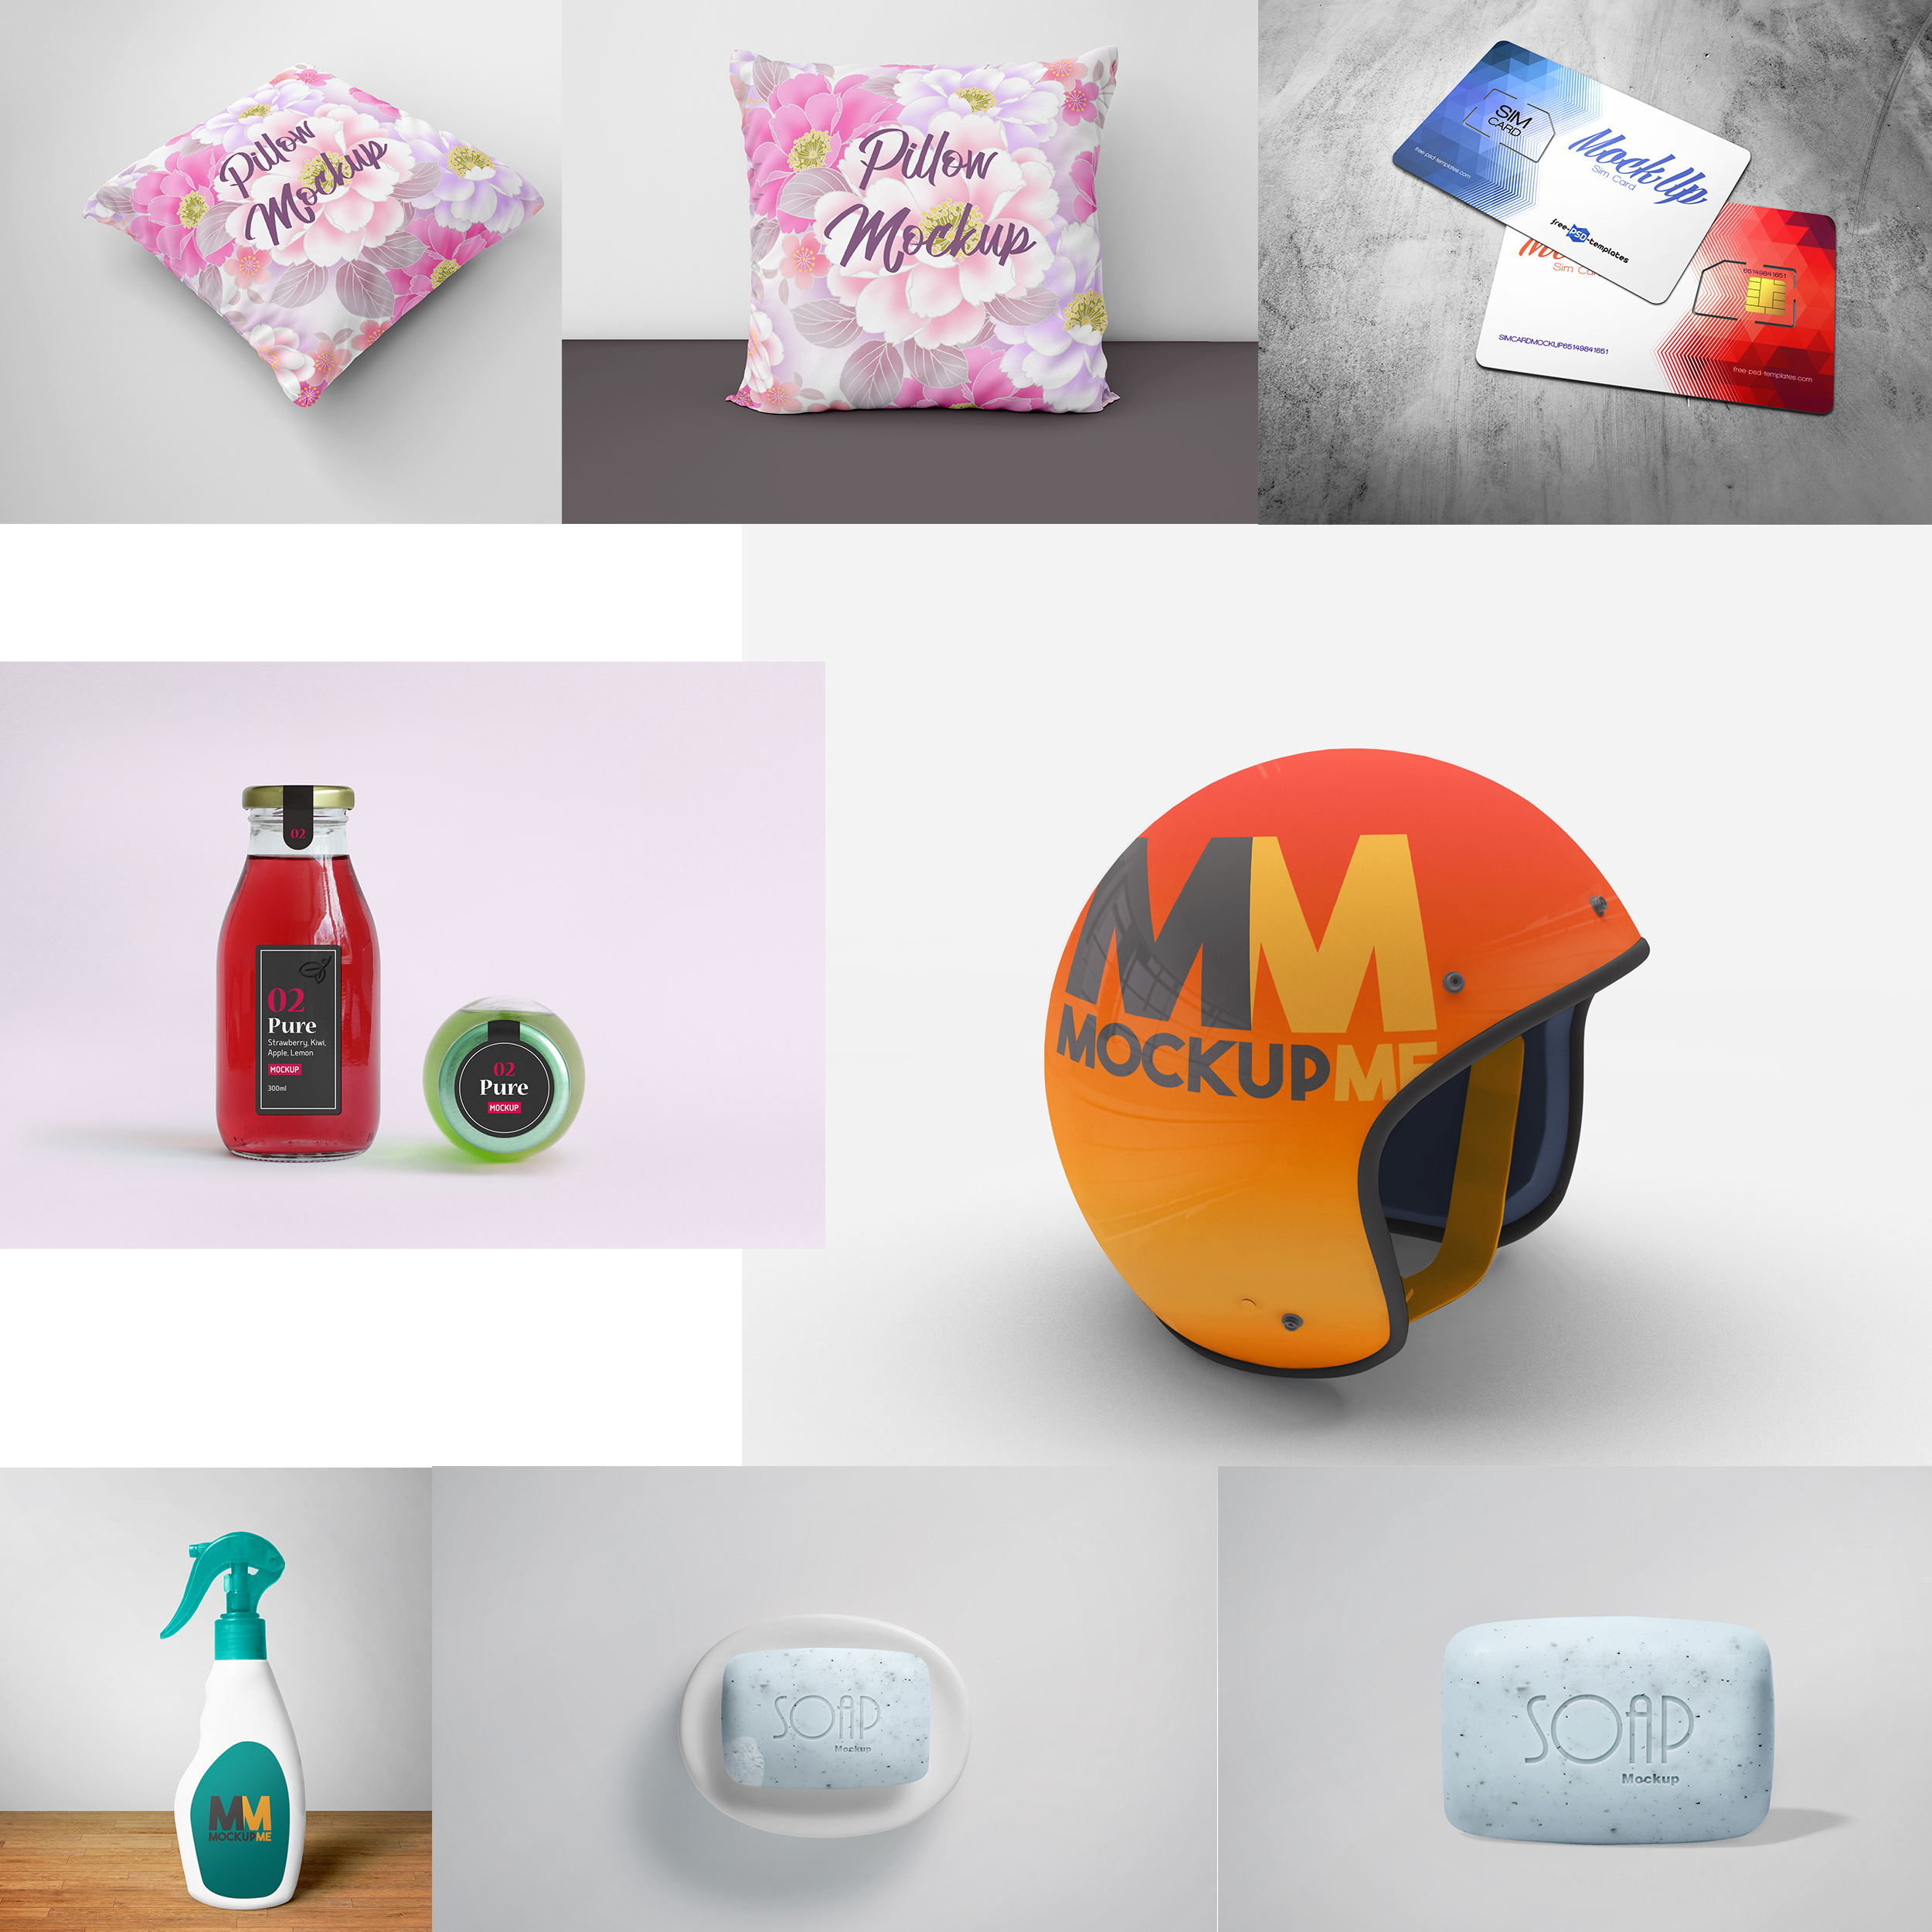 Product Packaging Design and 3d Mockup